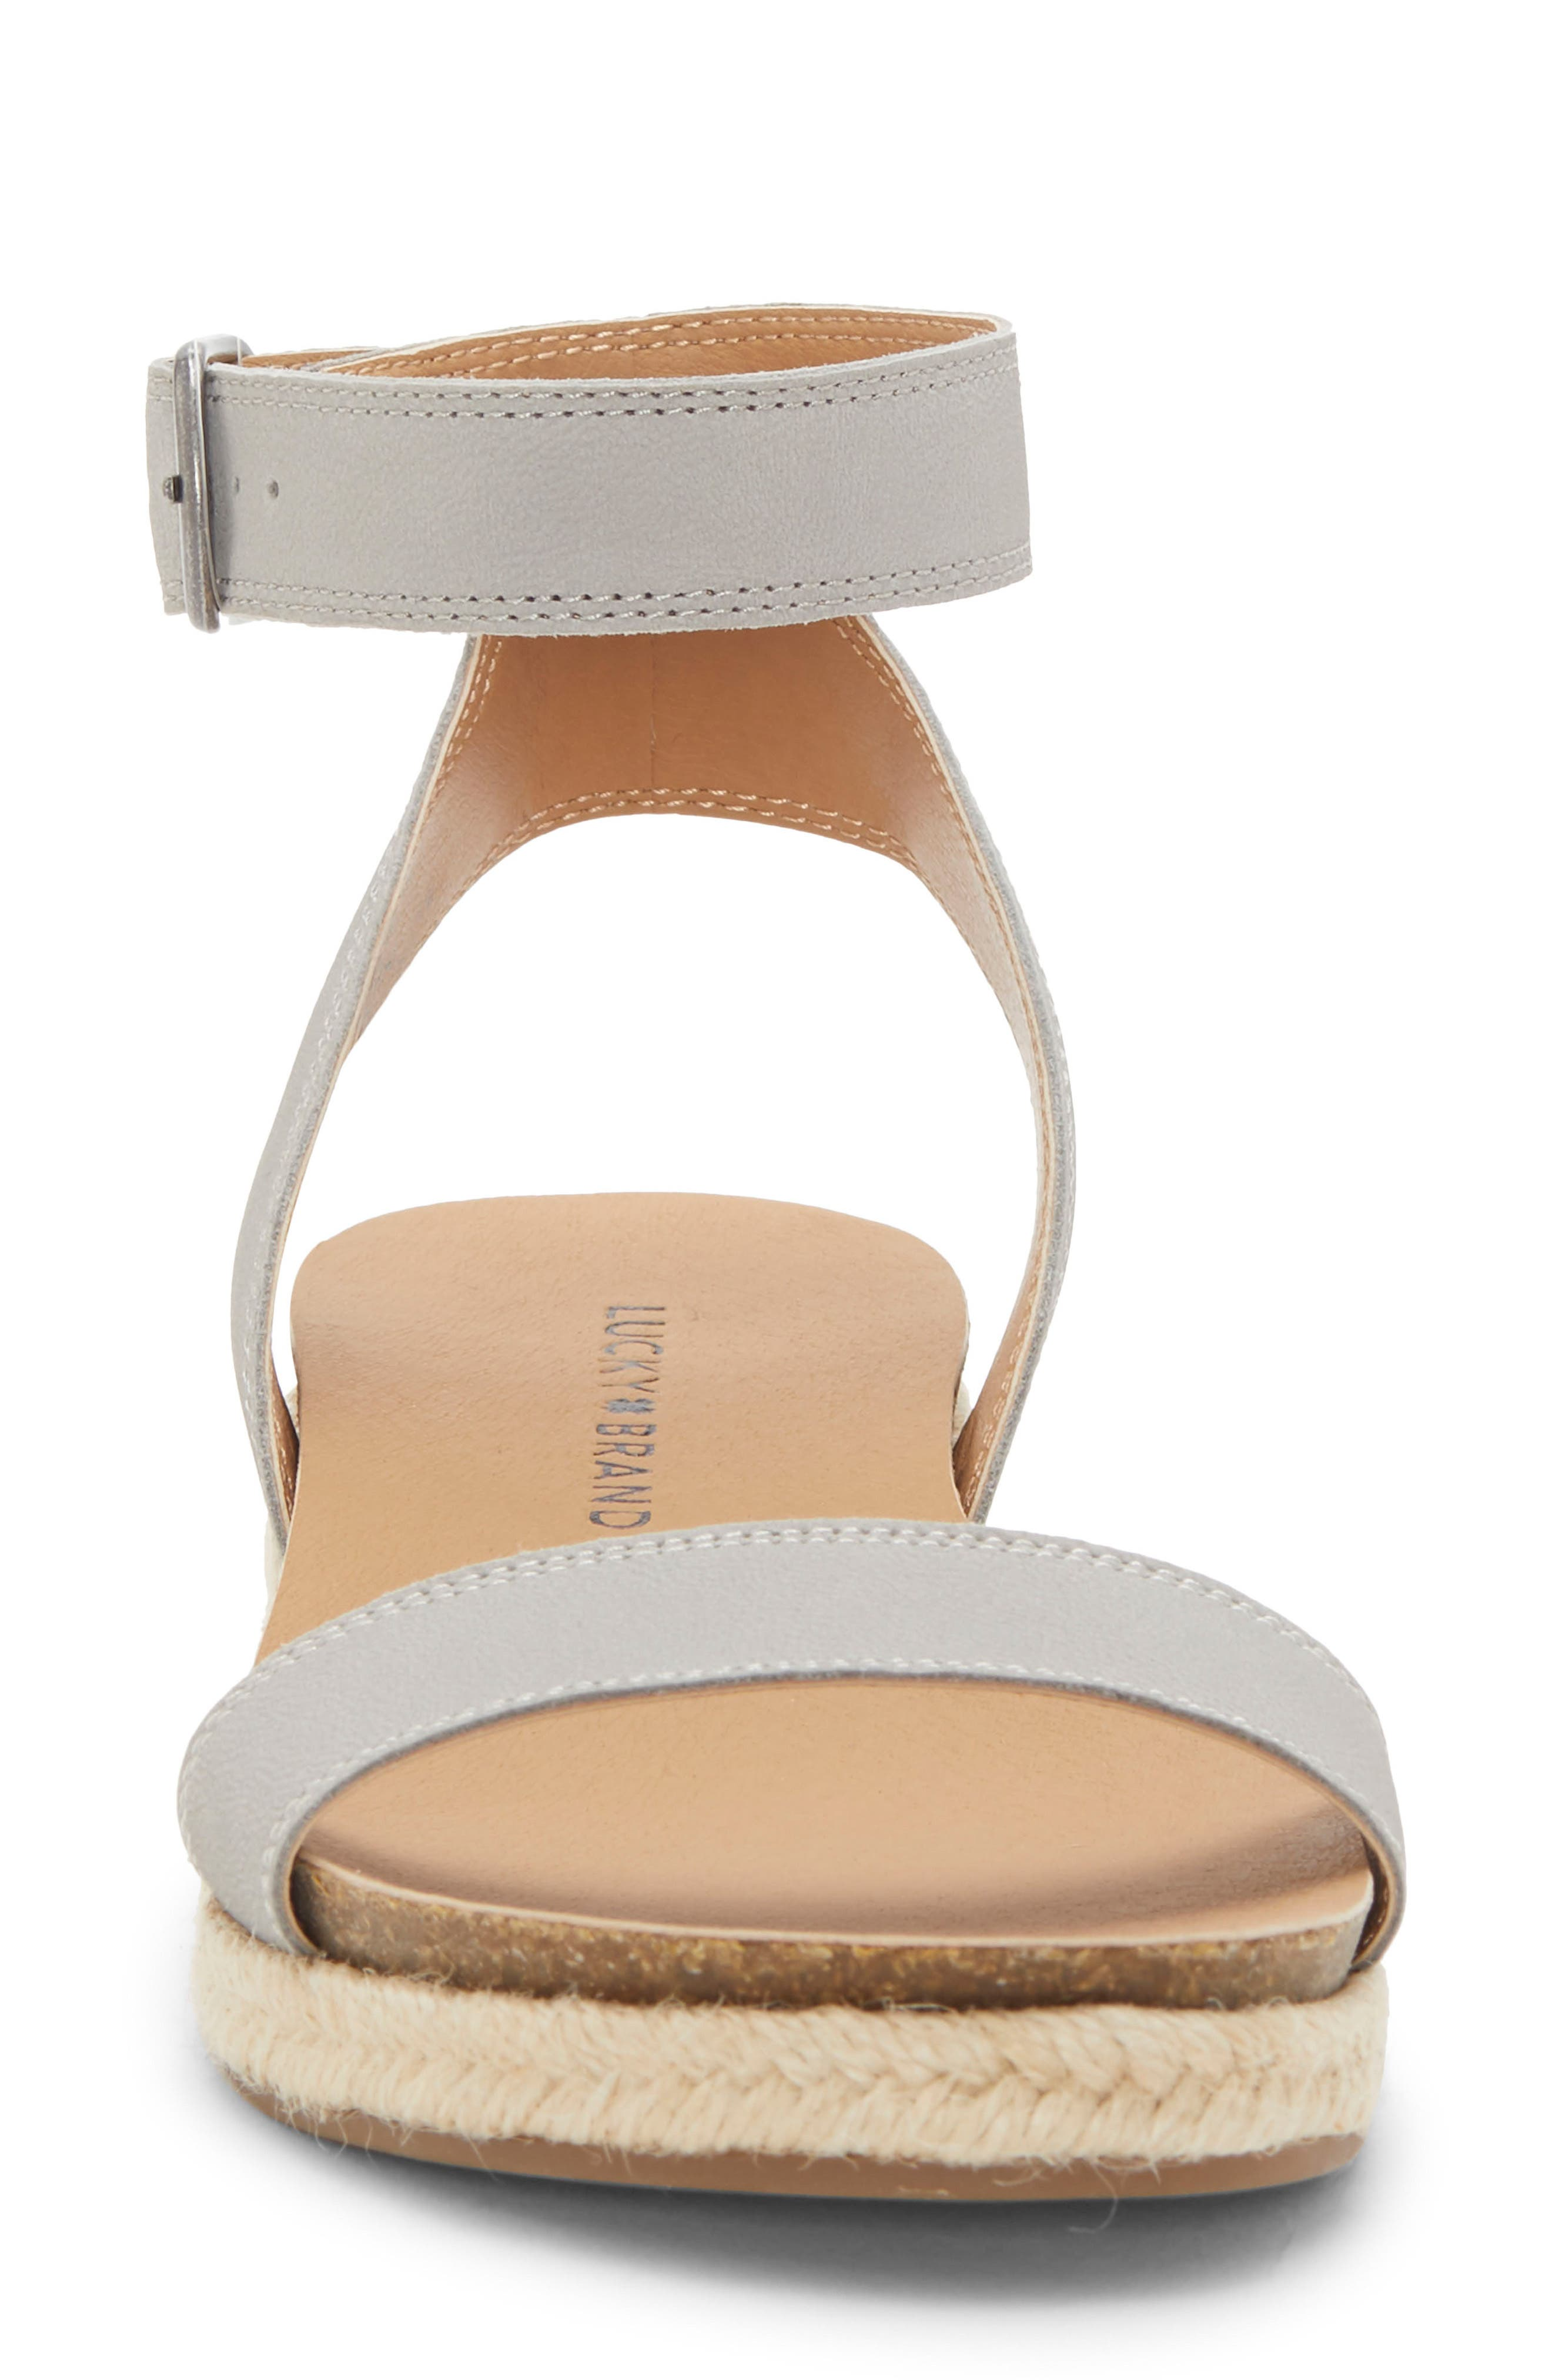 LUCKY BRAND, Garston Espadrille Sandal, Alternate thumbnail 4, color, CHINCHILLA LEATHER